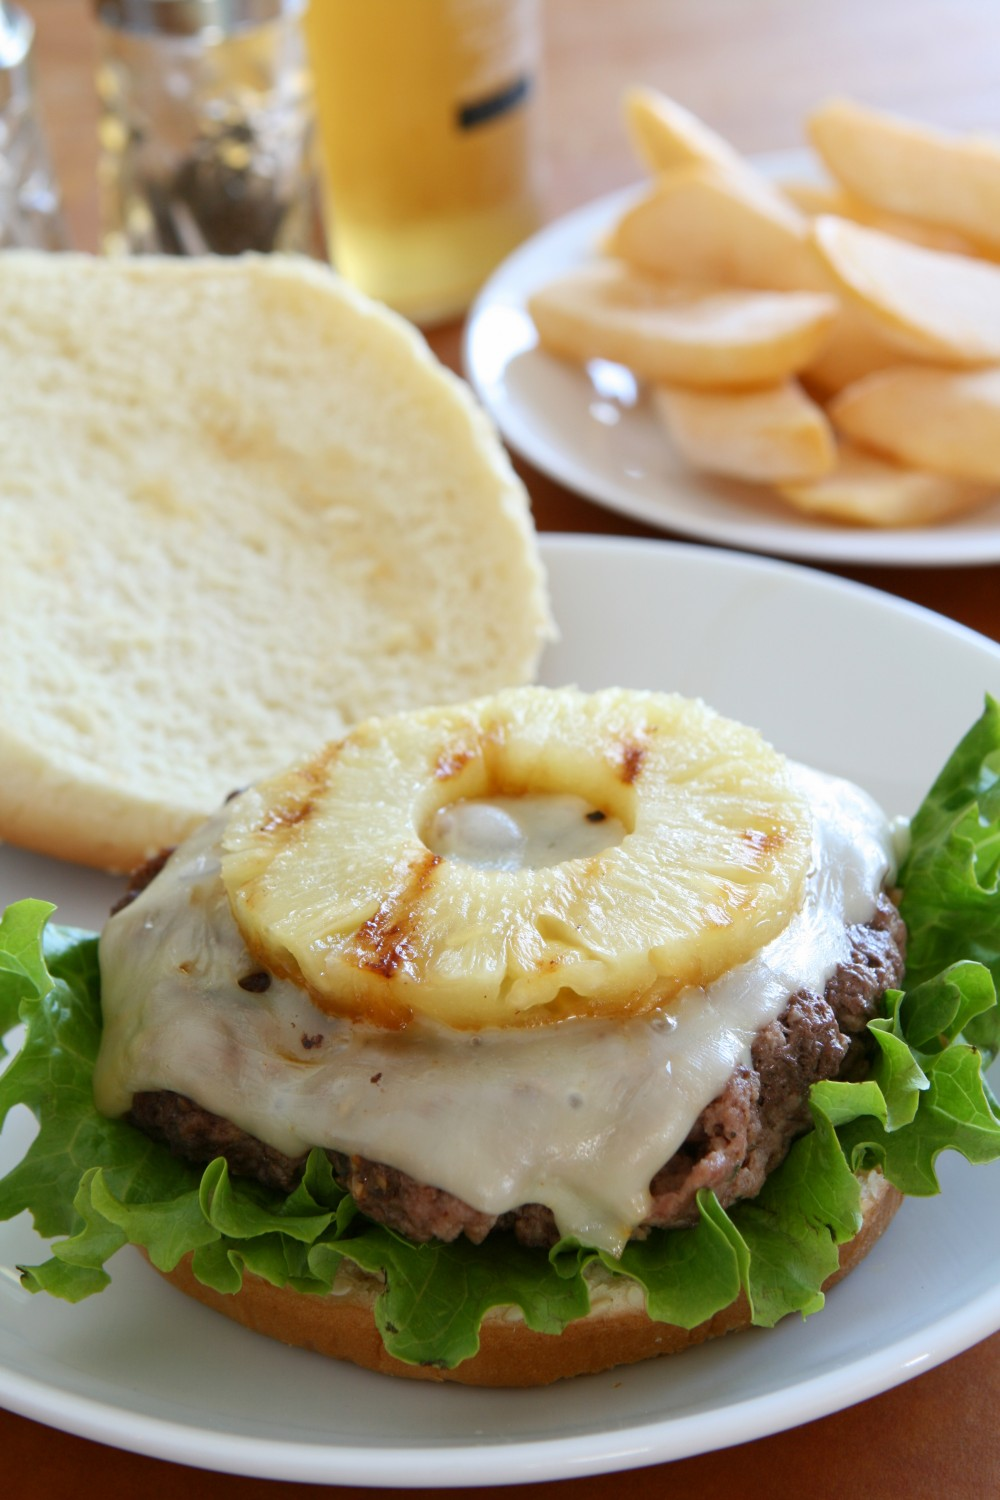 Turkey burgers don't have to be bland! And it's not just the pineapple that makes these turkey burgers so flavorful and juicy!